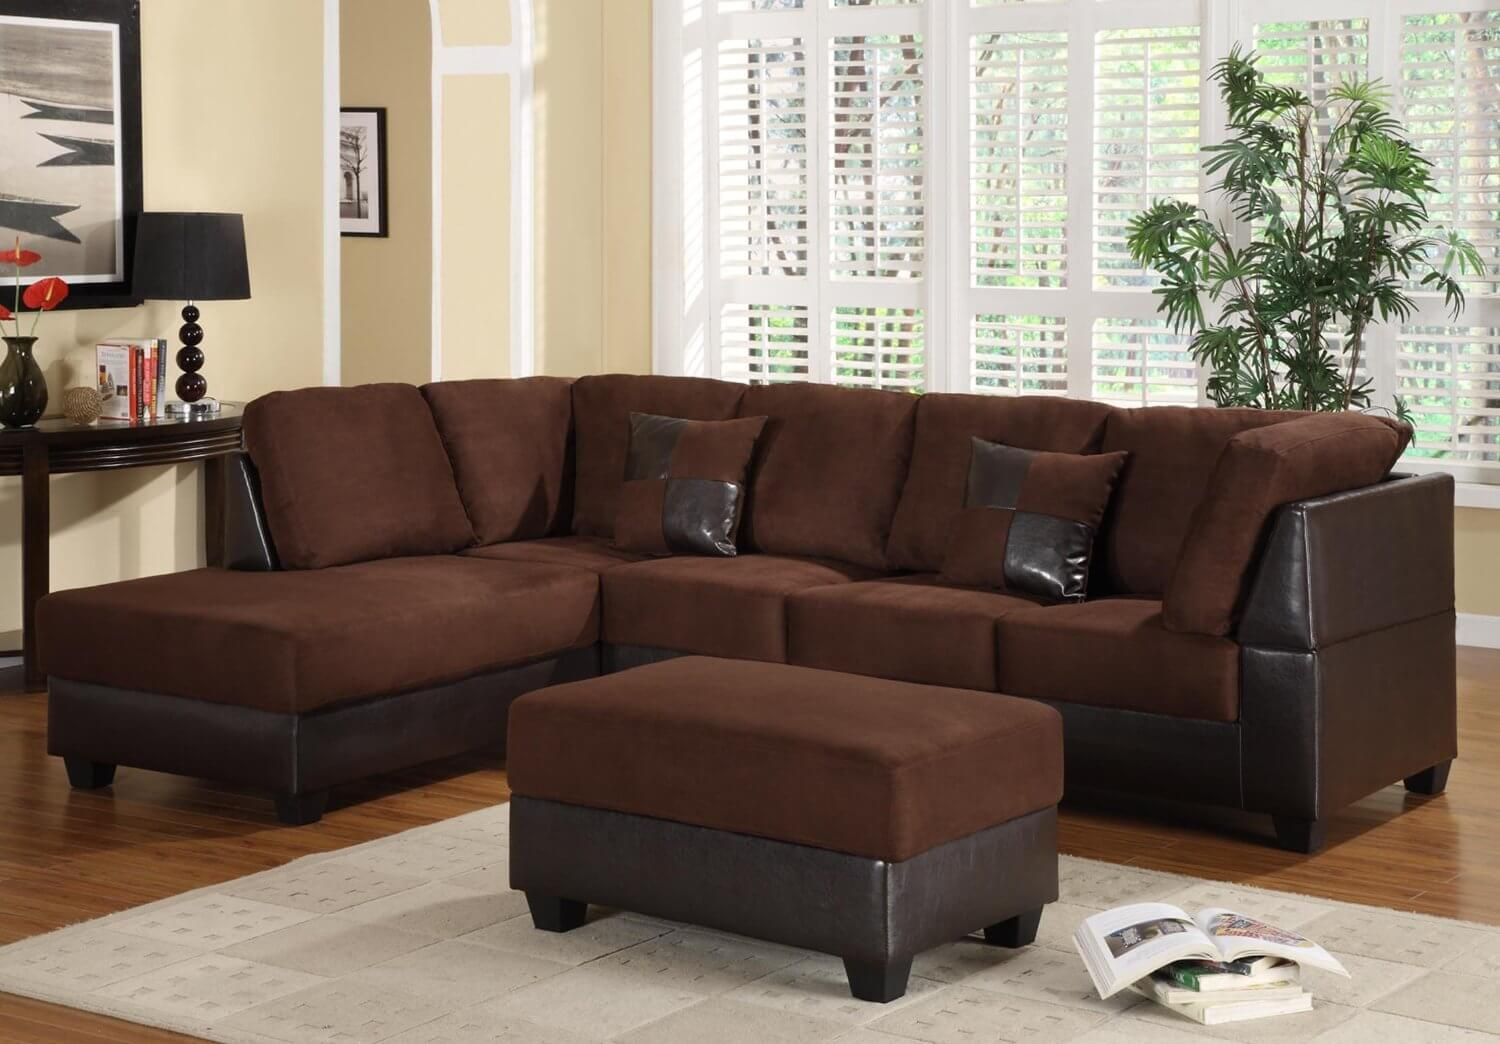 Couch Sets Under 500 Cheap Living Room Furniture Cheap Living Room Sets Cheap Sofa Sets